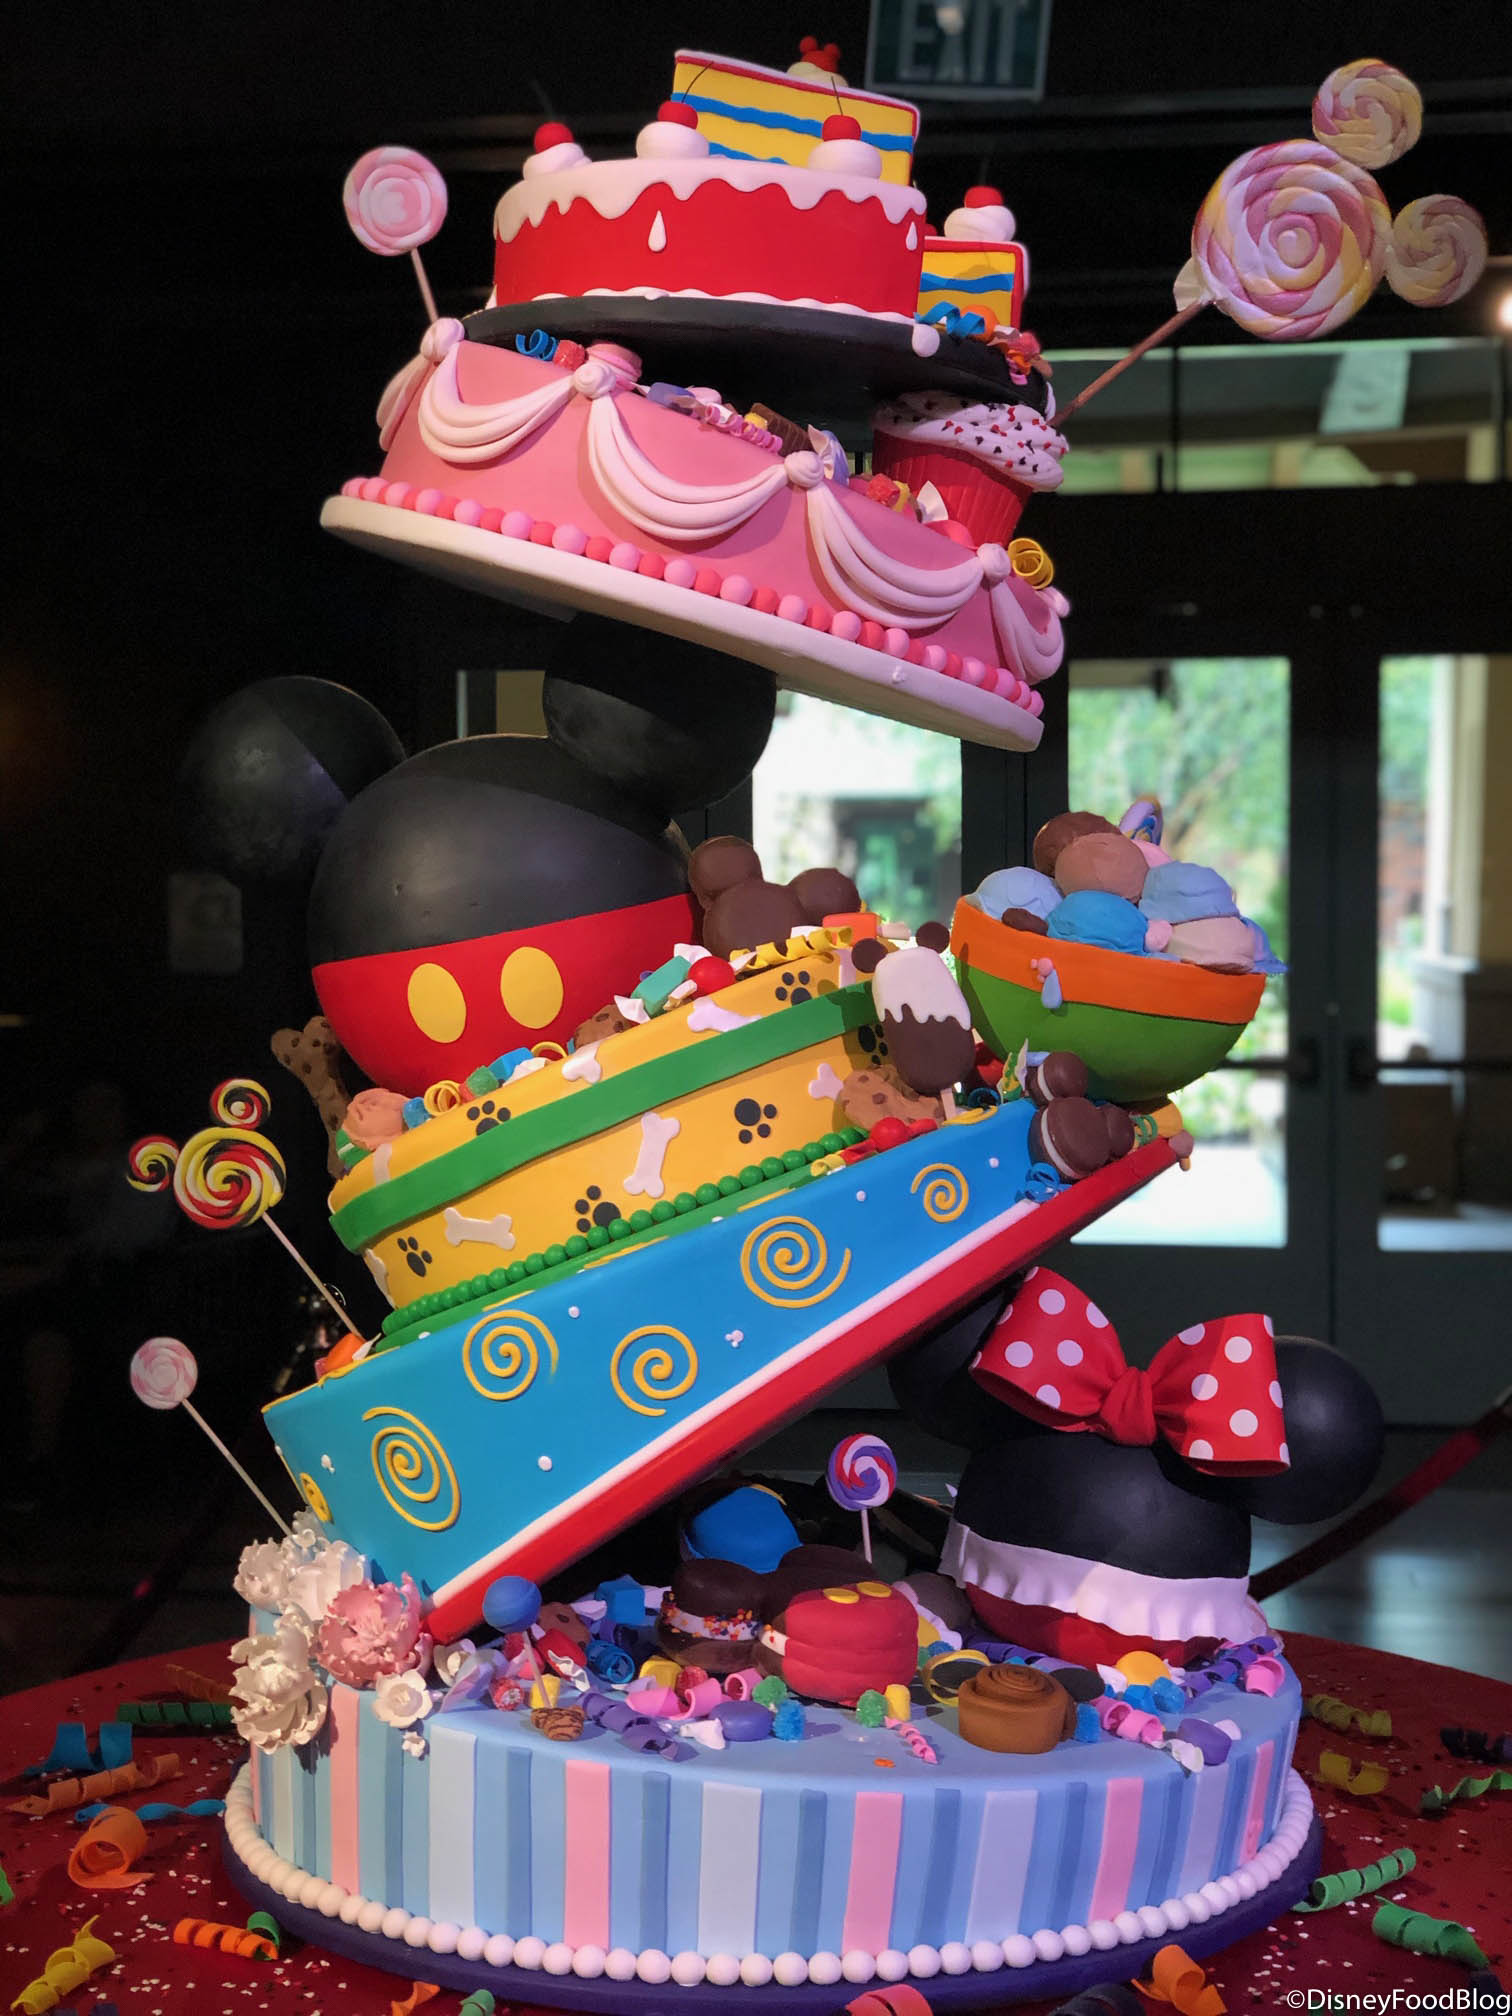 Check Out Mickeys 90th Birthday Cake In Disneyland Resorts Grand Californian Hotel